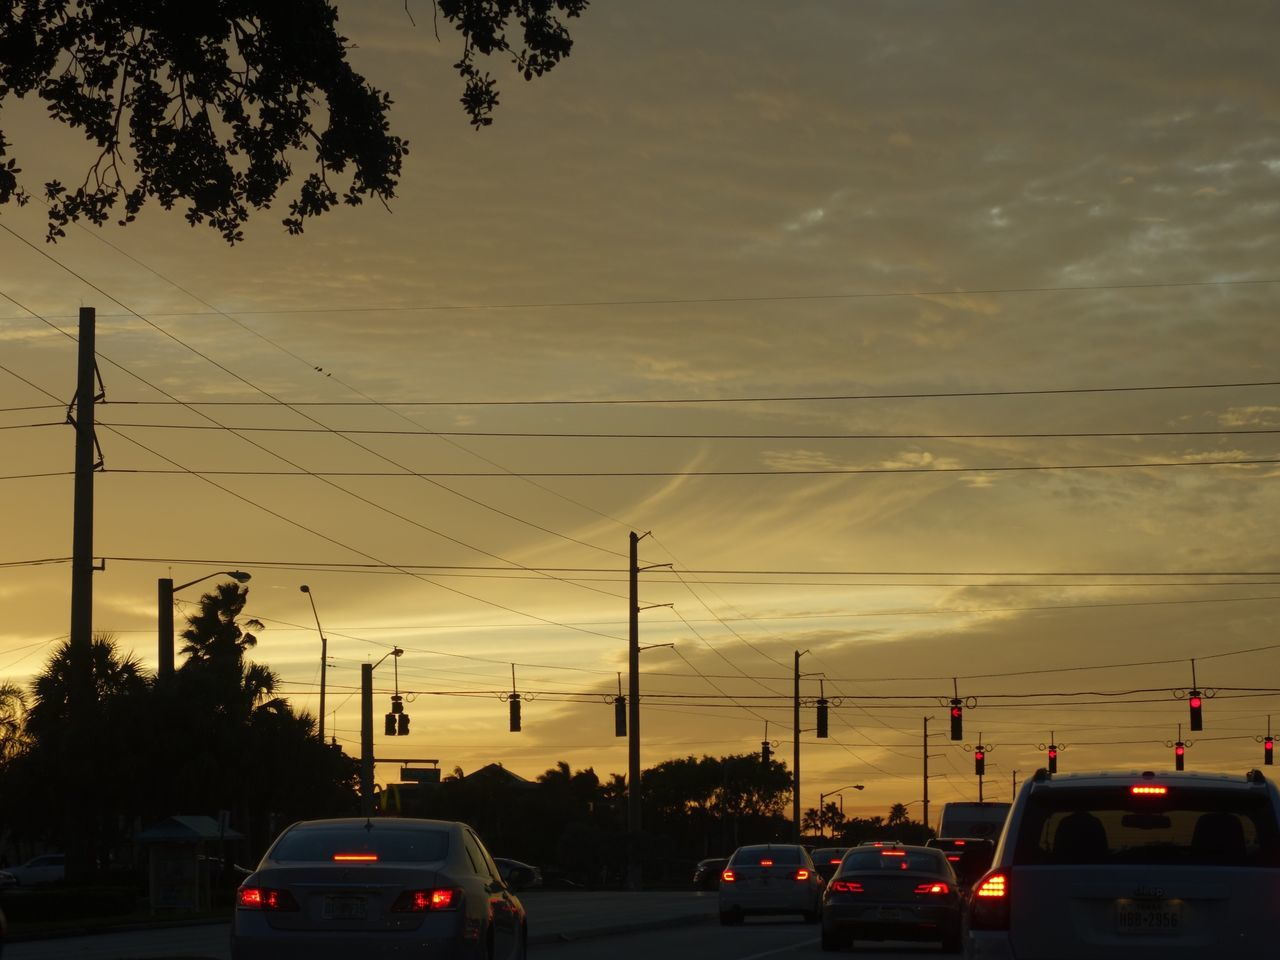 car, sunset, transportation, land vehicle, sky, road, tree, cloud - sky, mode of transport, silhouette, no people, outdoors, nature, city, electricity pylon